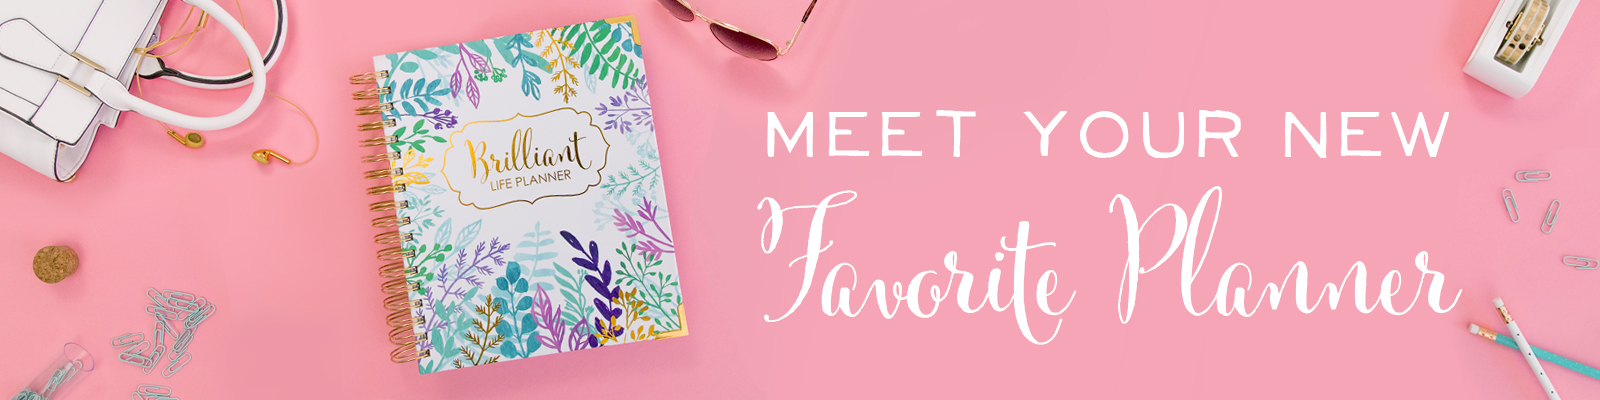 Finally, a planner as brilliant and beautiful as you are! Get the 2018 Brilliant Life Planner and flourish this year.